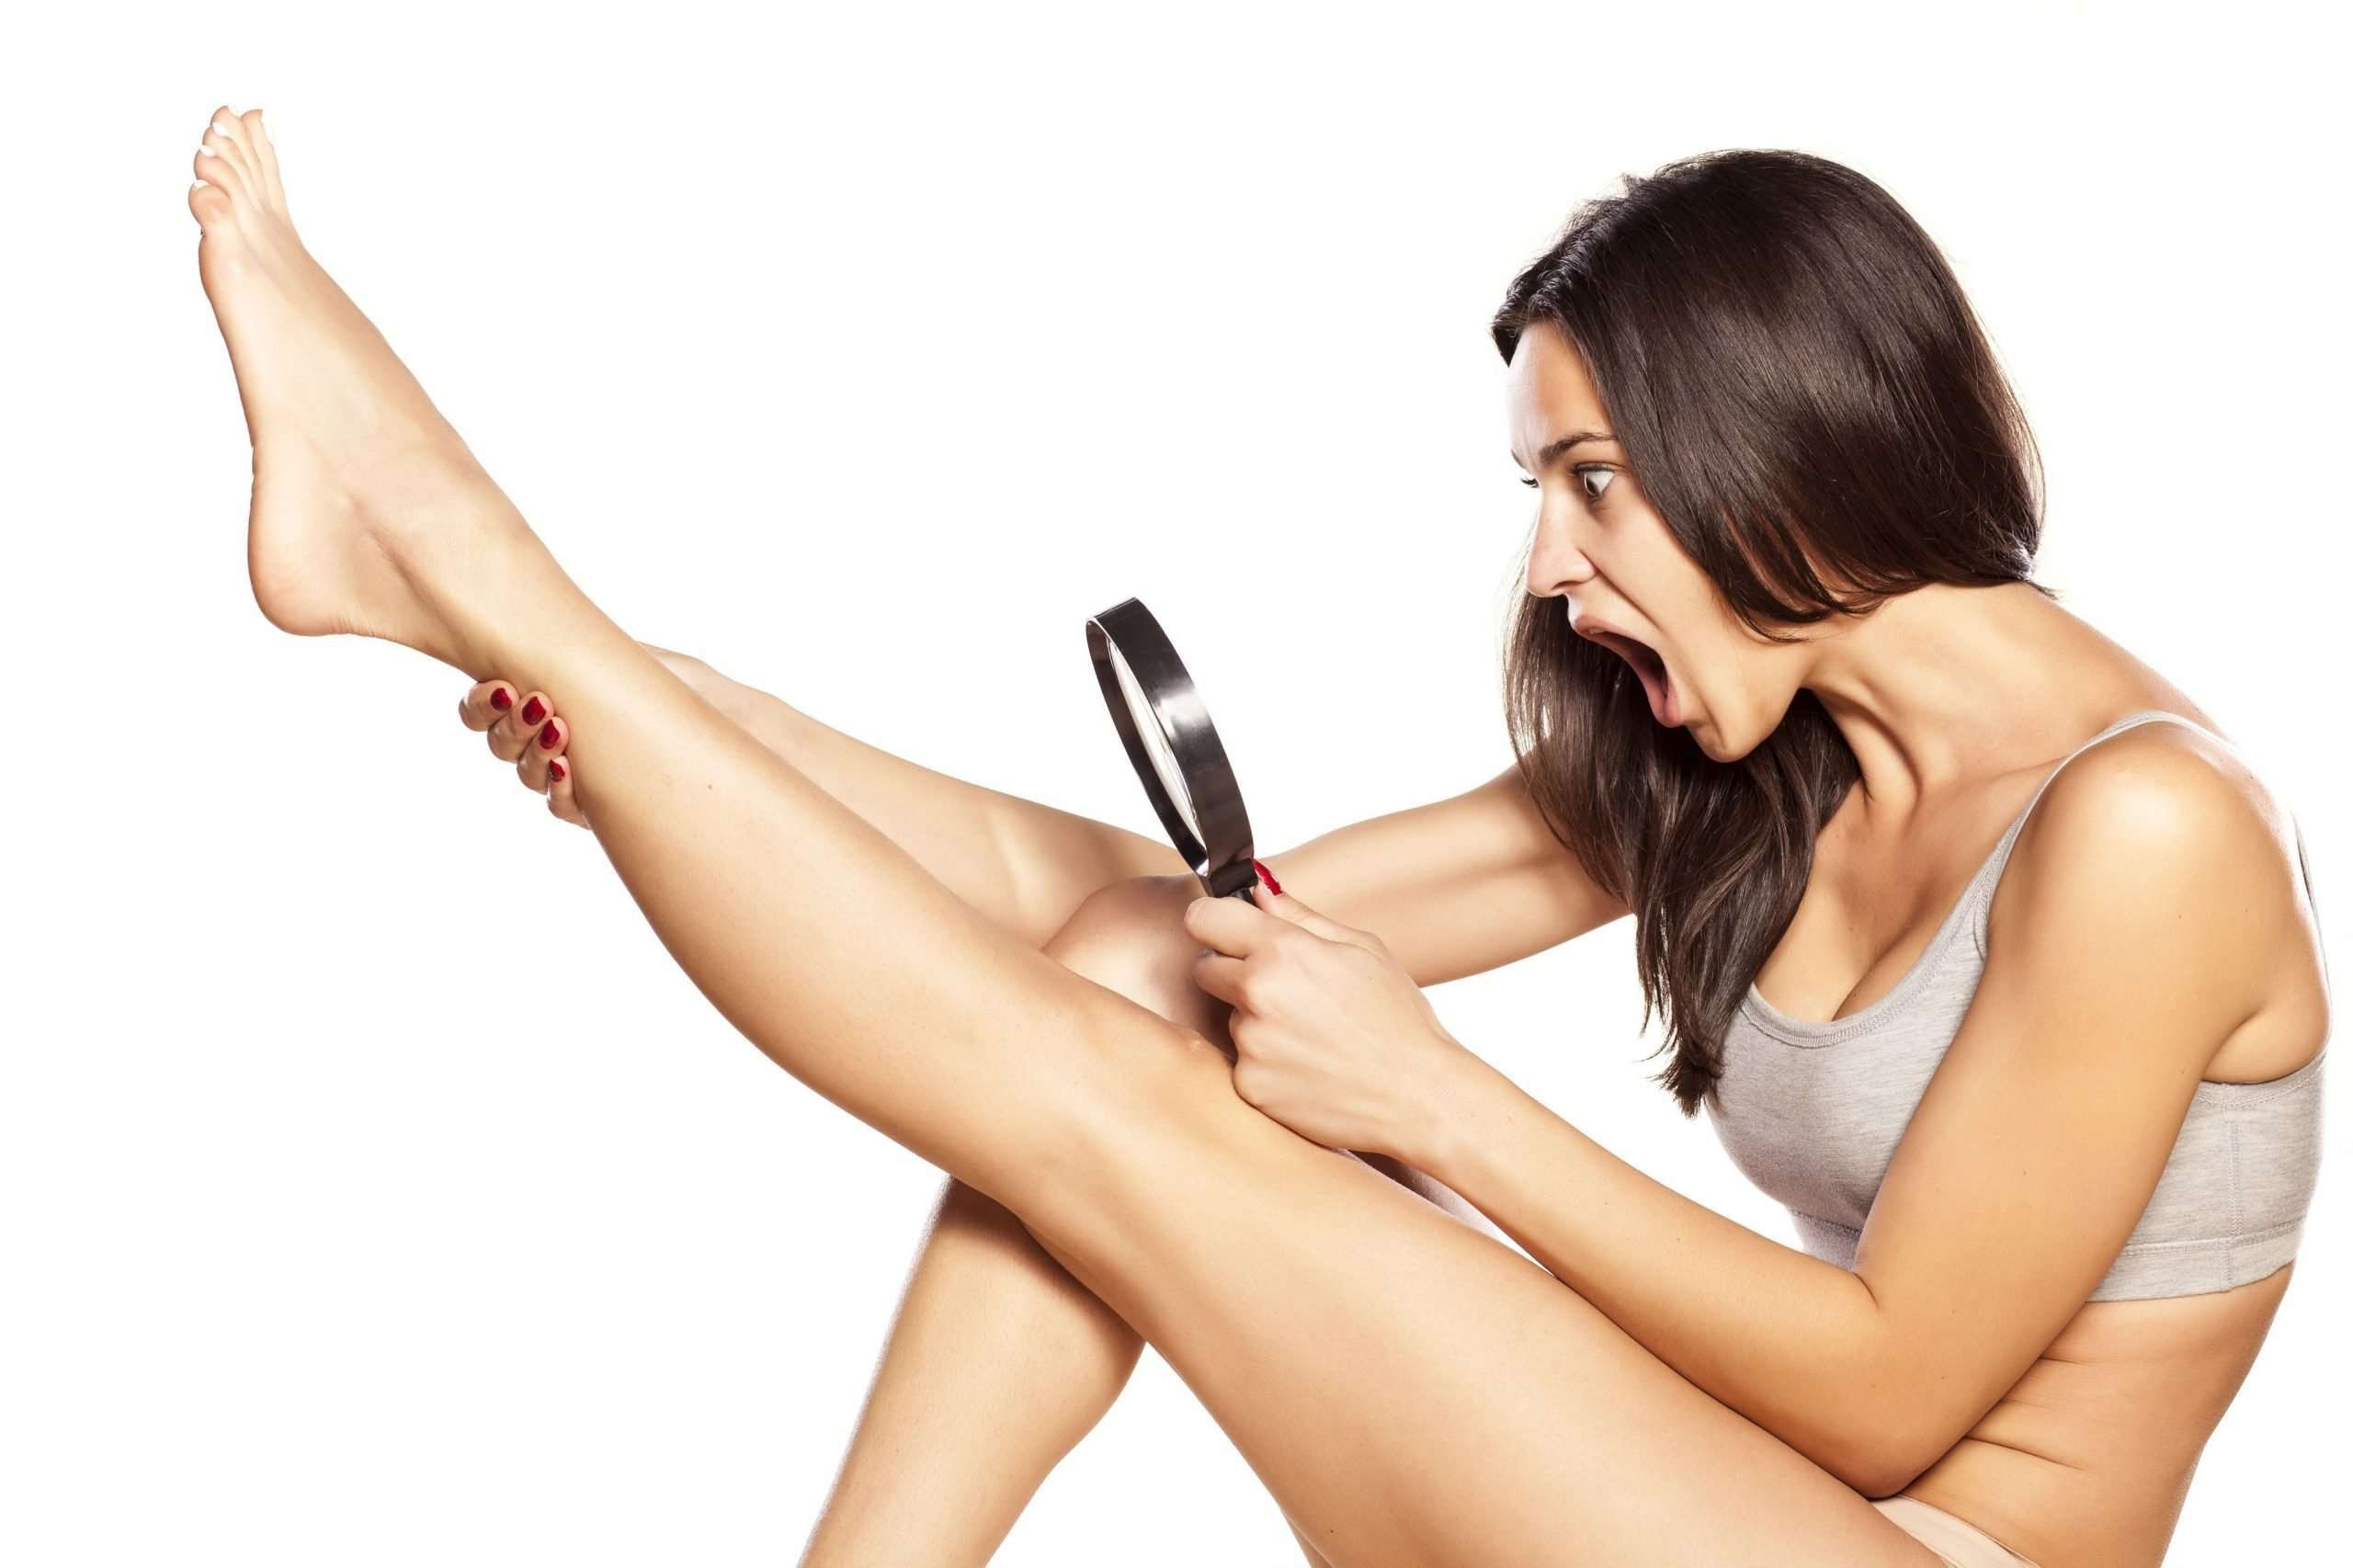 Trim the longer hairs on your legs